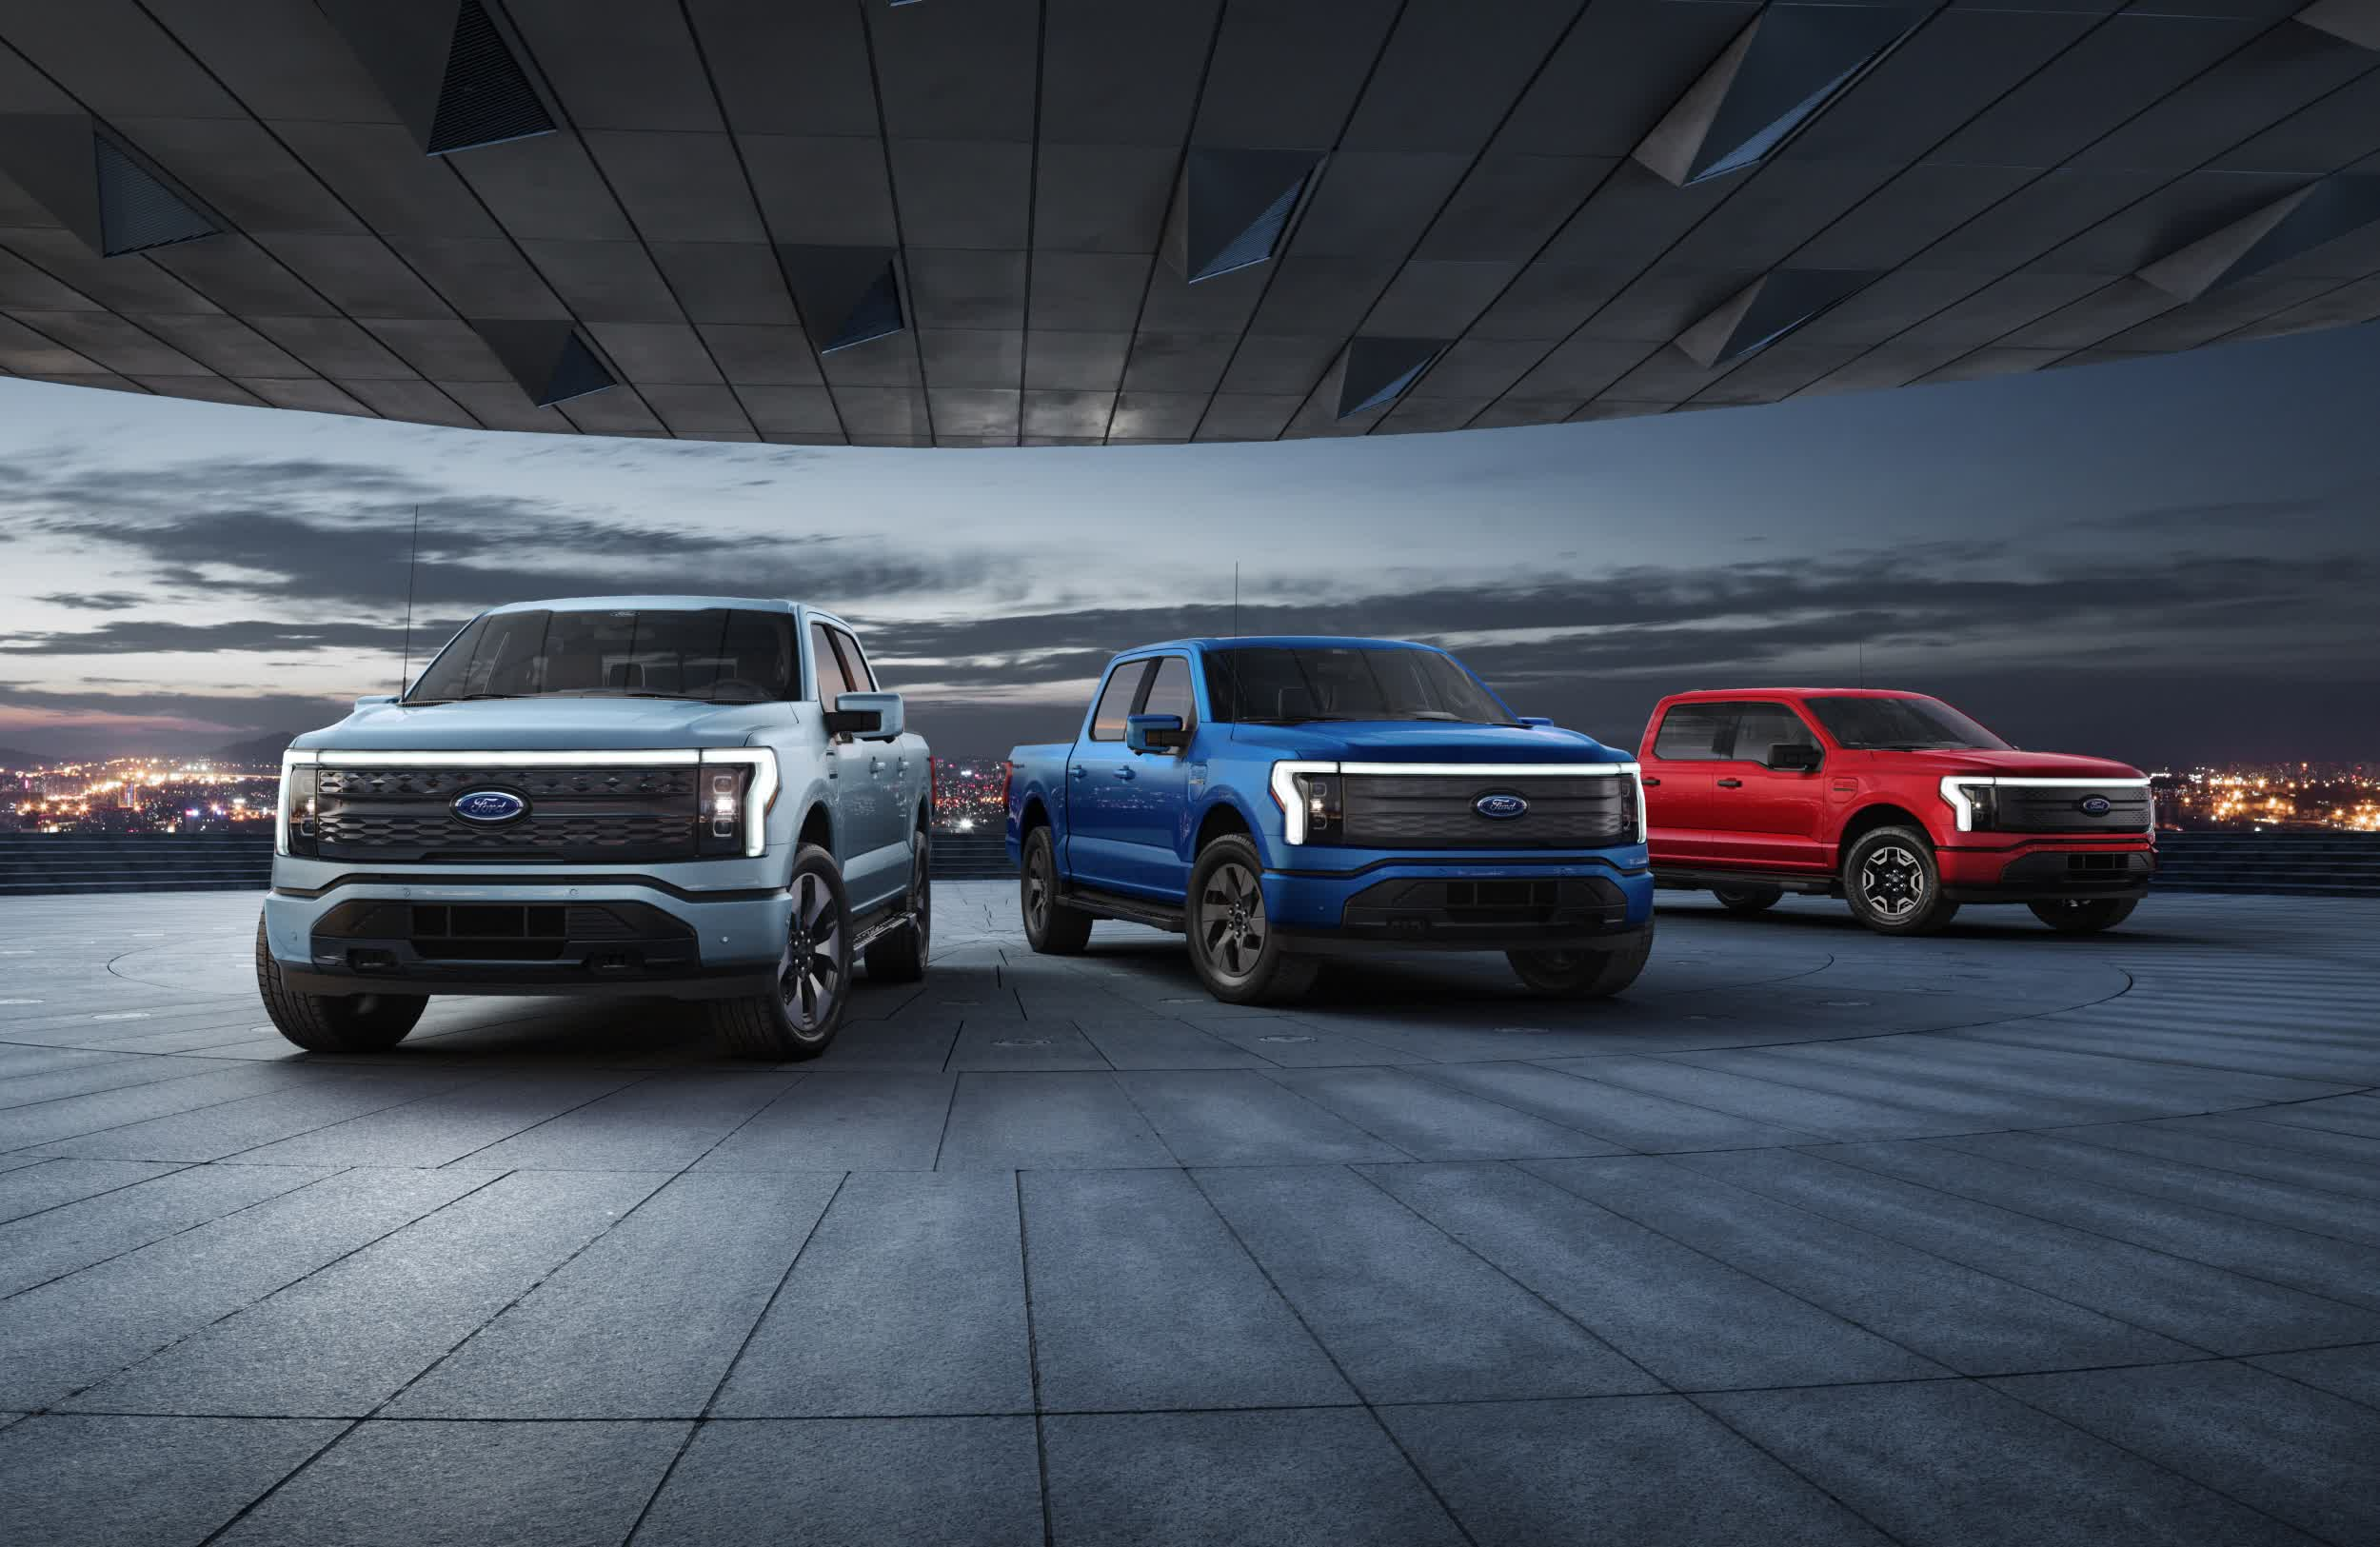 This is the Ford F-150 Lightning: 300 miles of range, 563 horsepower and 775 lb-ft of torque